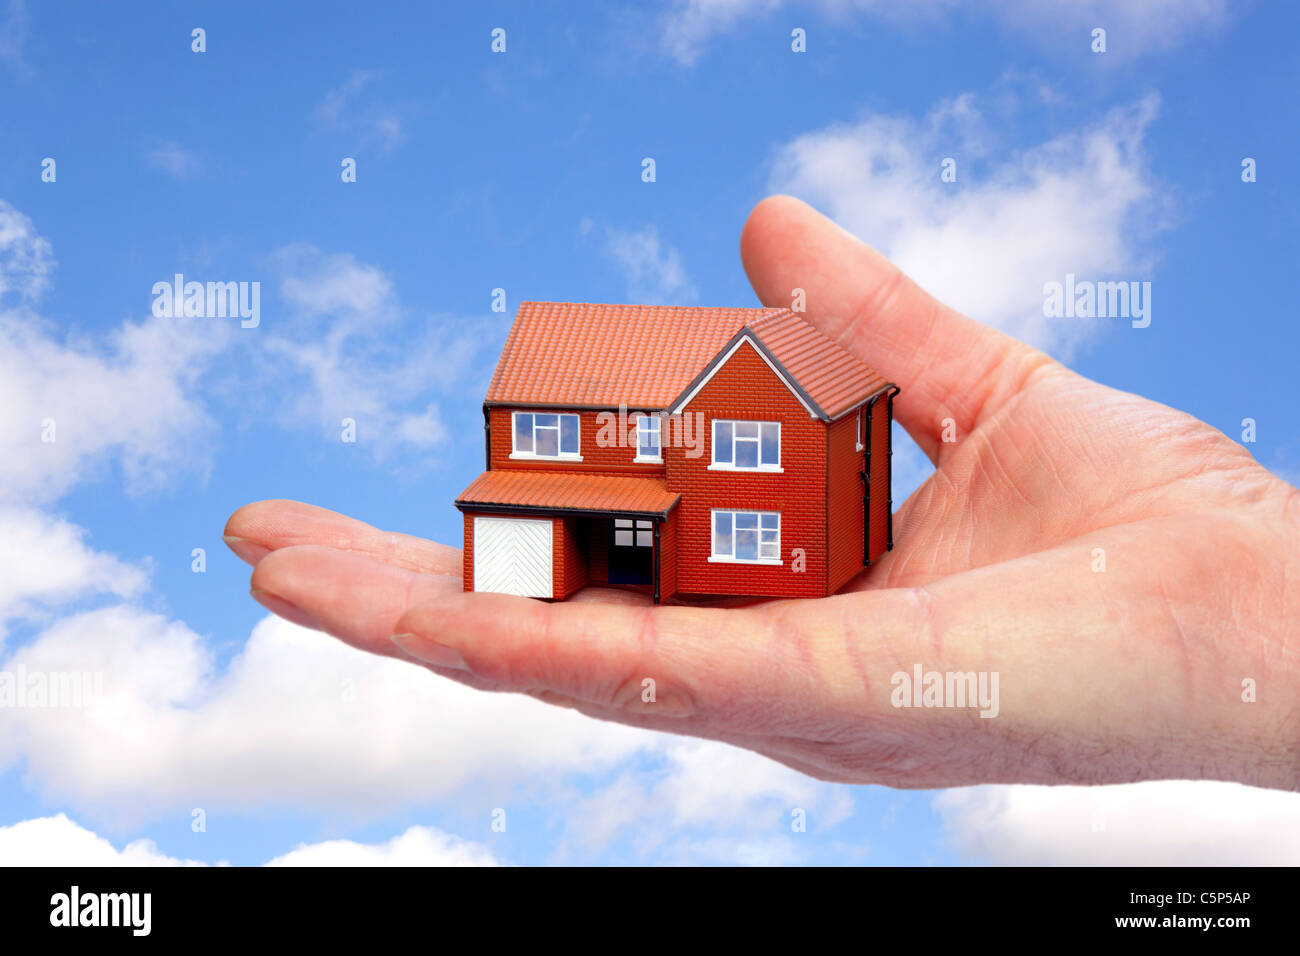 Photo of a hand holding a model house against a sky background. - Stock Image